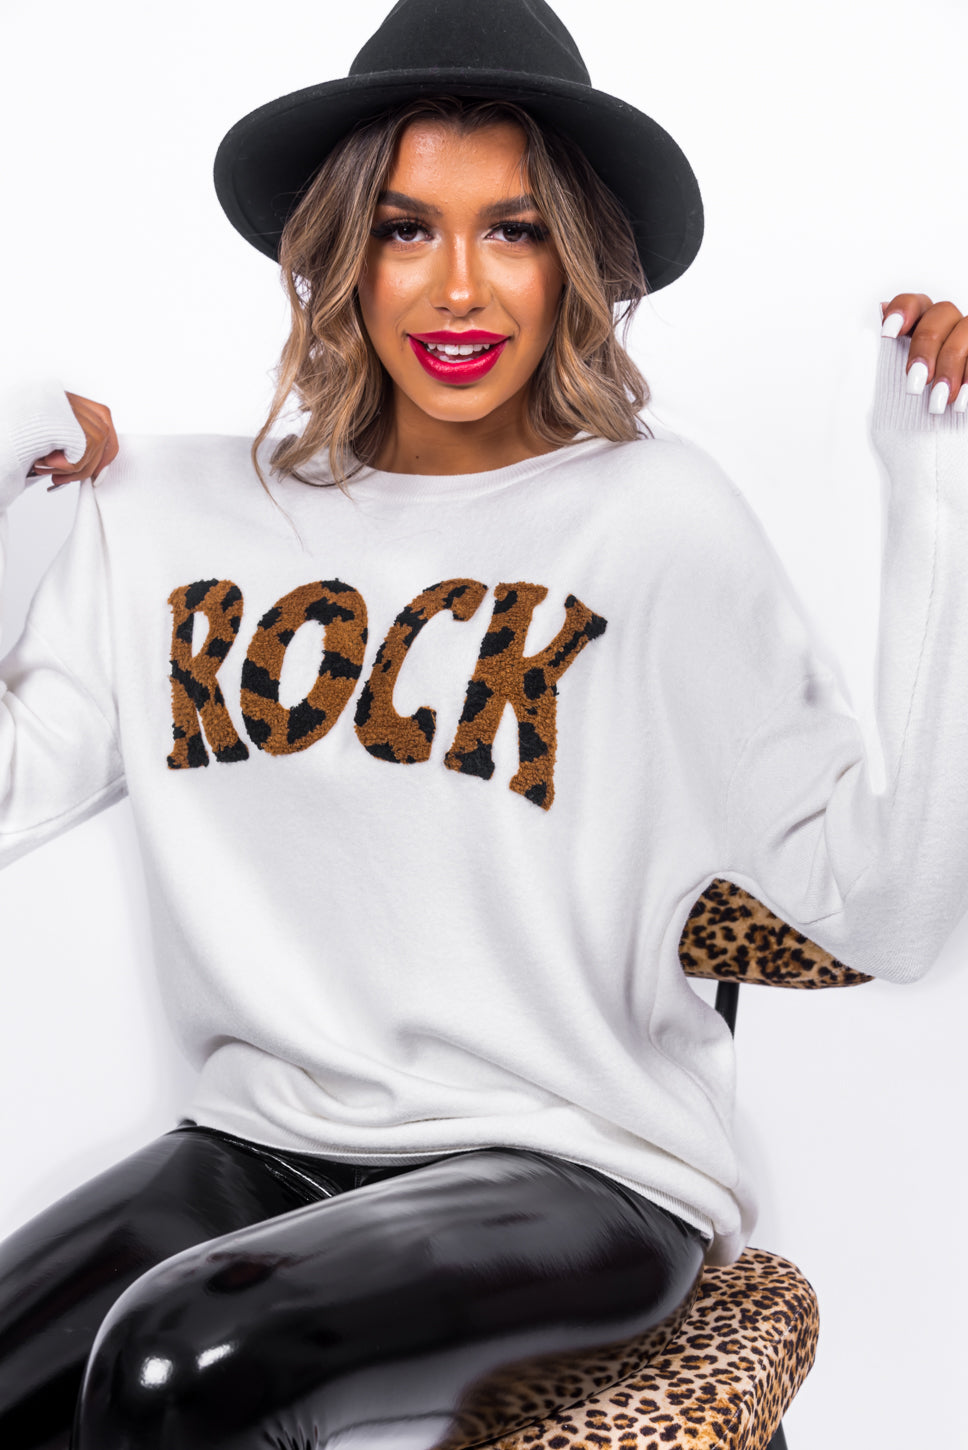 Planet Rock - Jumper In WHITE/LEOPARD